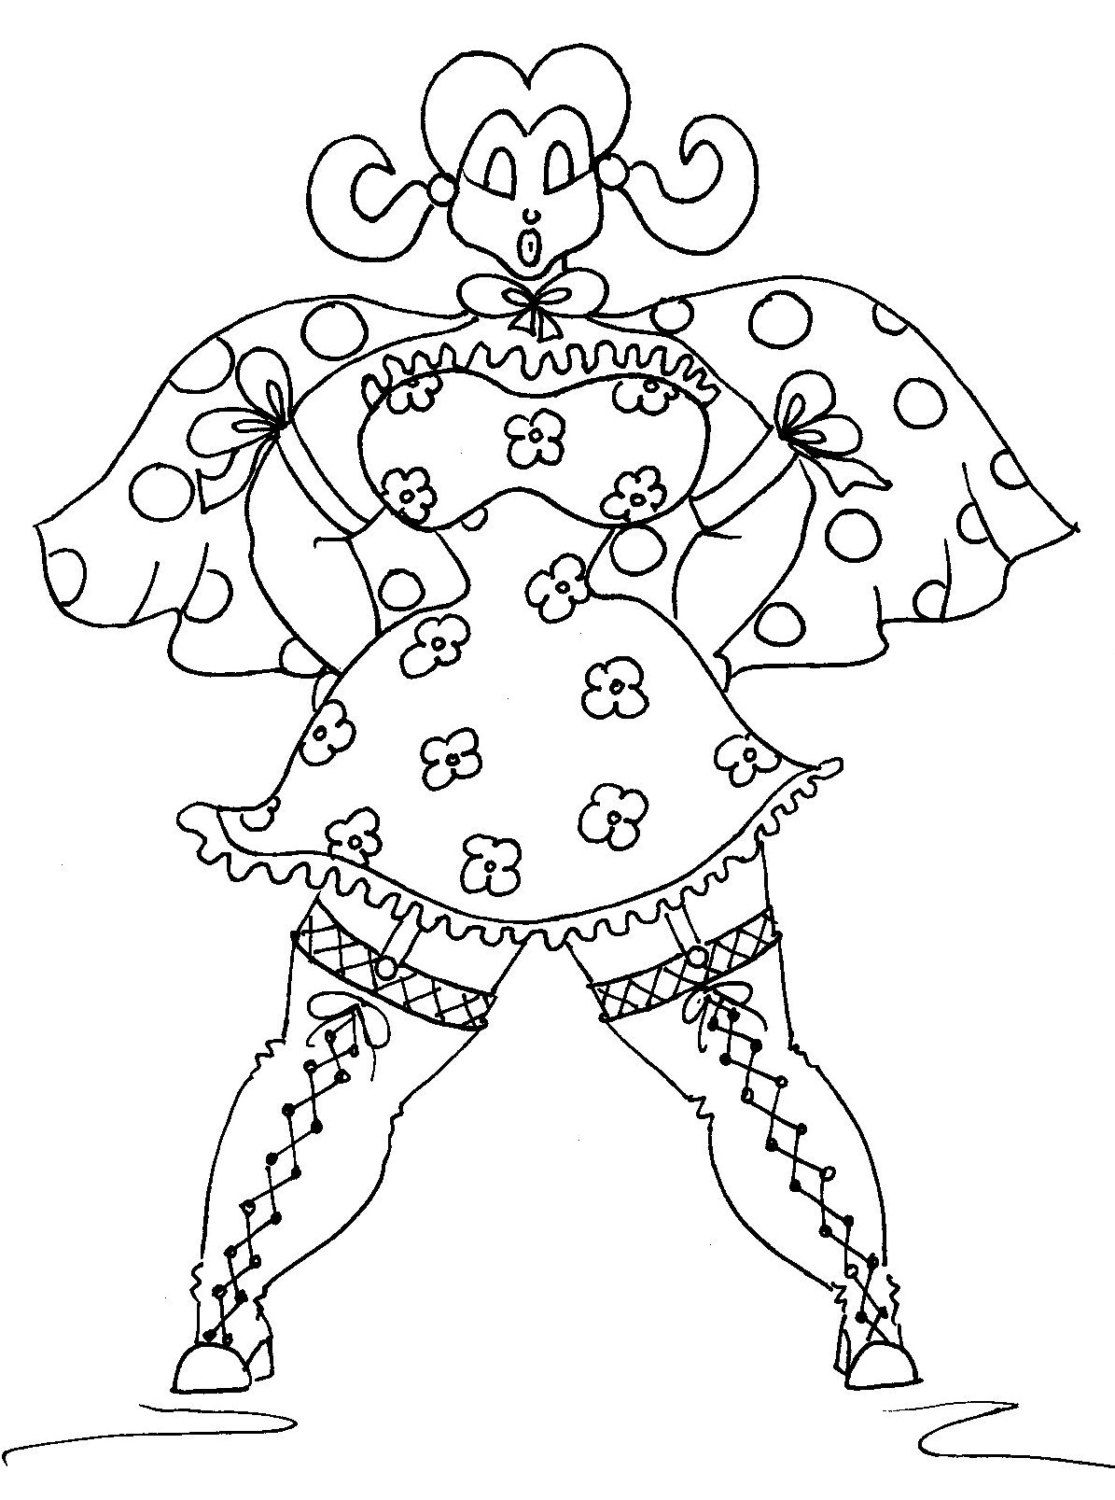 Super Chubby Adult Coloring Page by Chubby Art Cartoons DIY